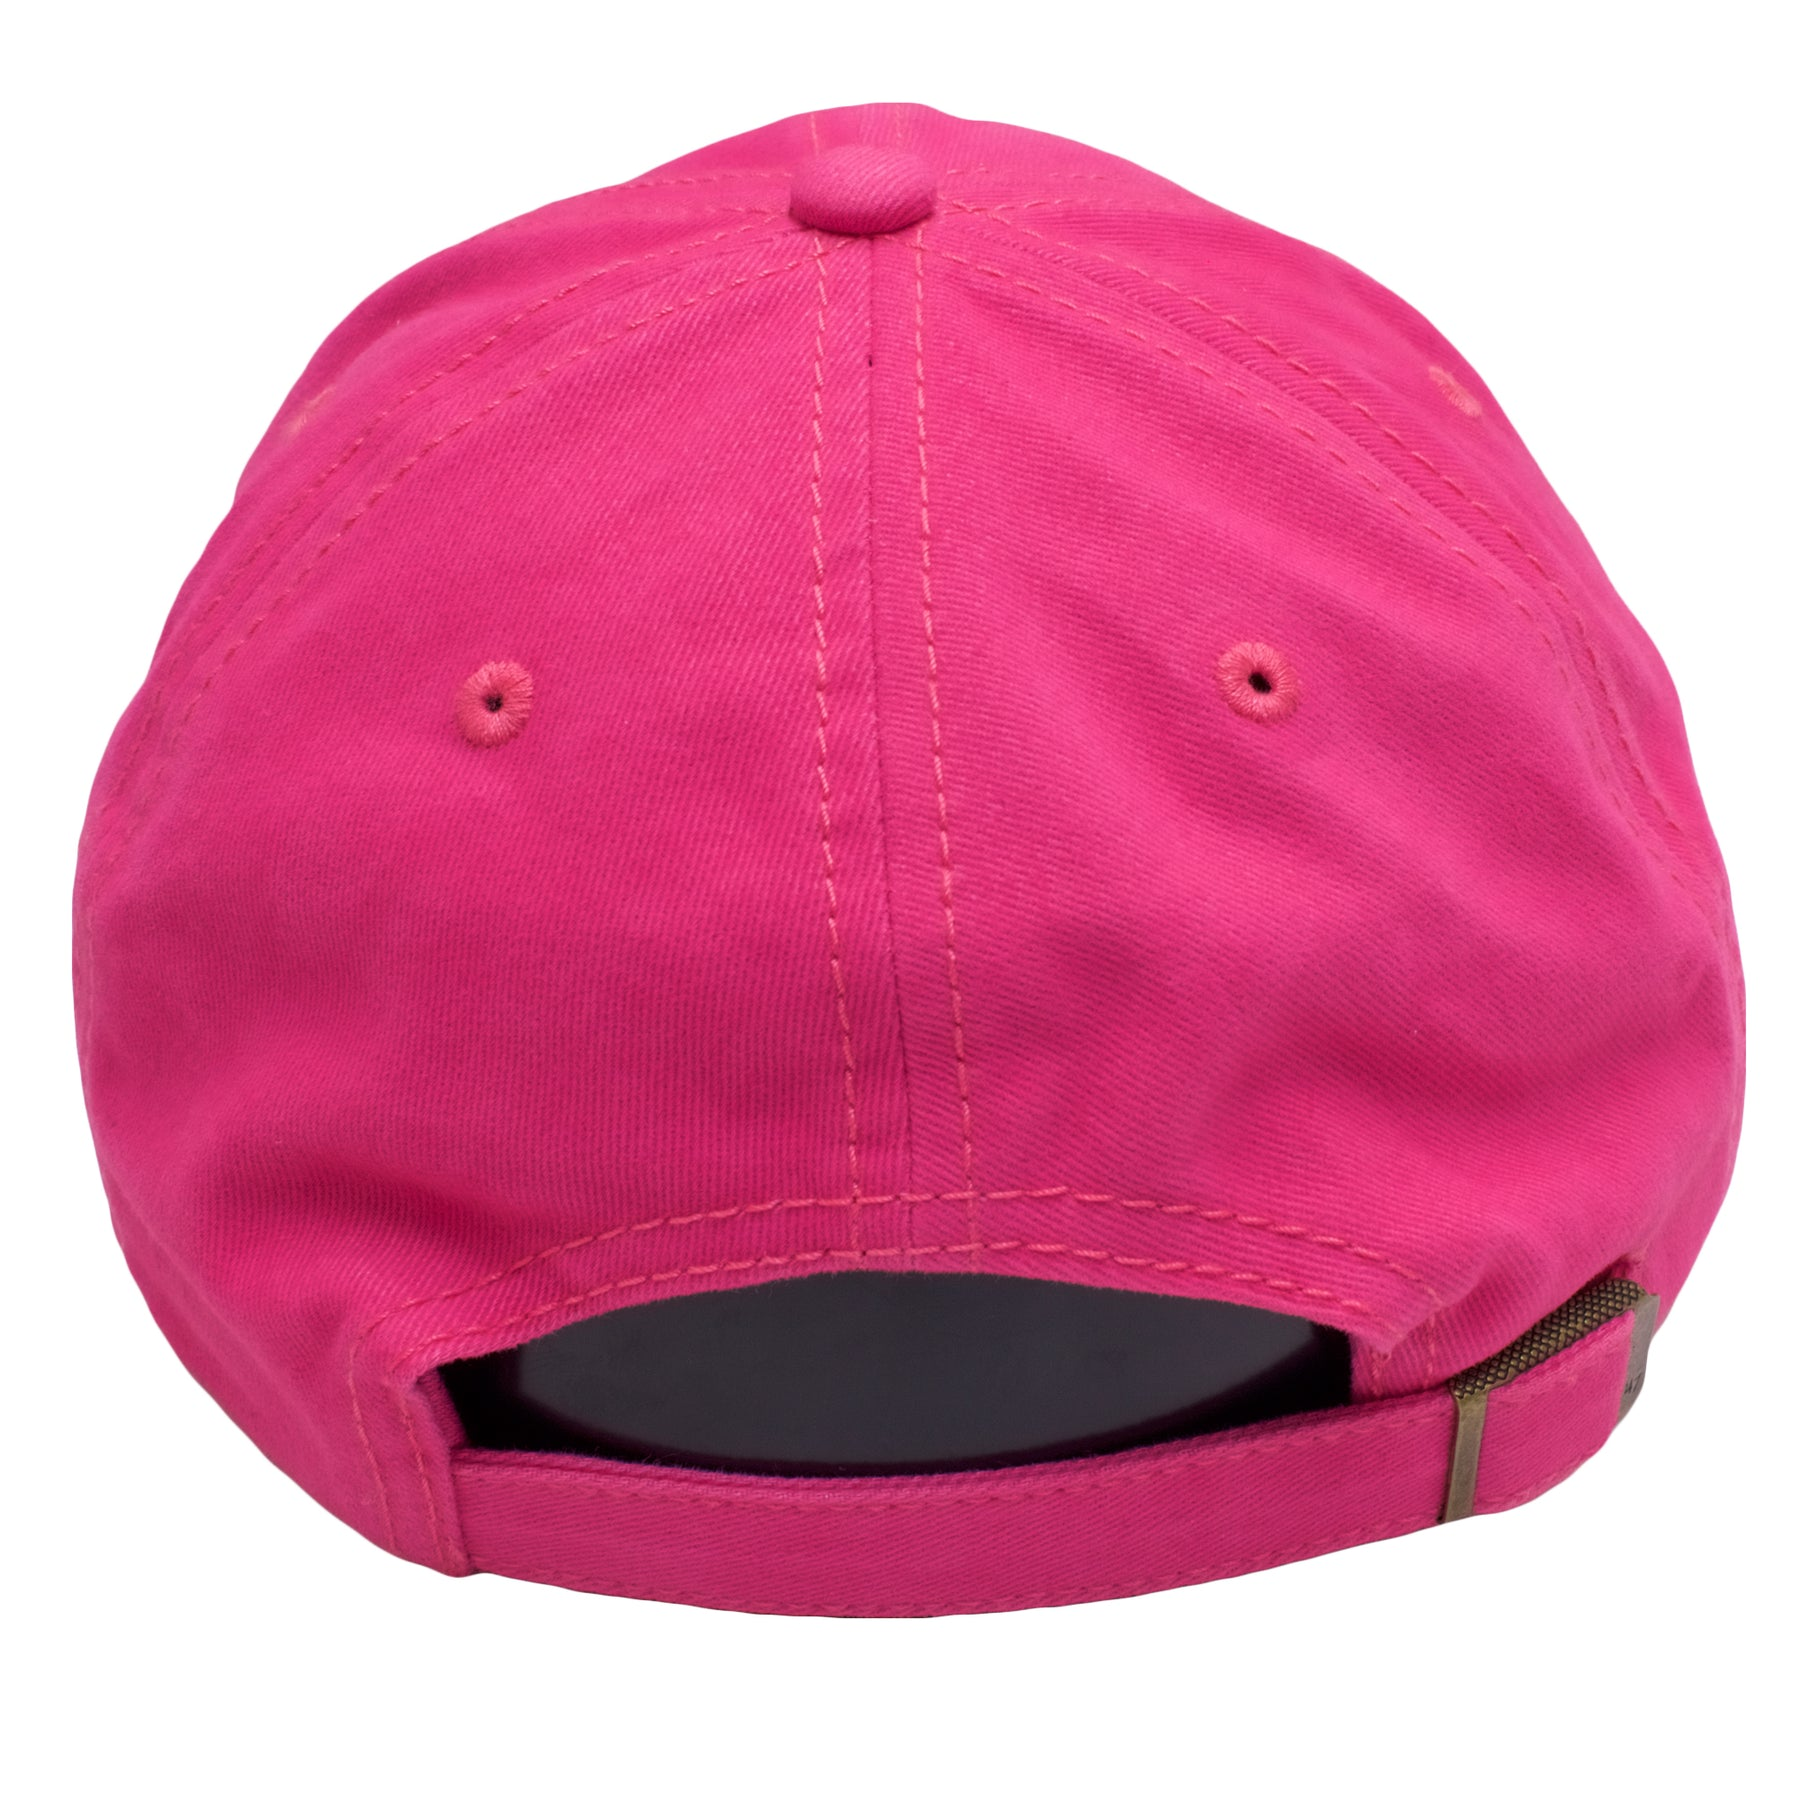 ... on the back of the philadelphia phillies hot pink dad hat is an  adjustable strap ... 773b0bd6f13